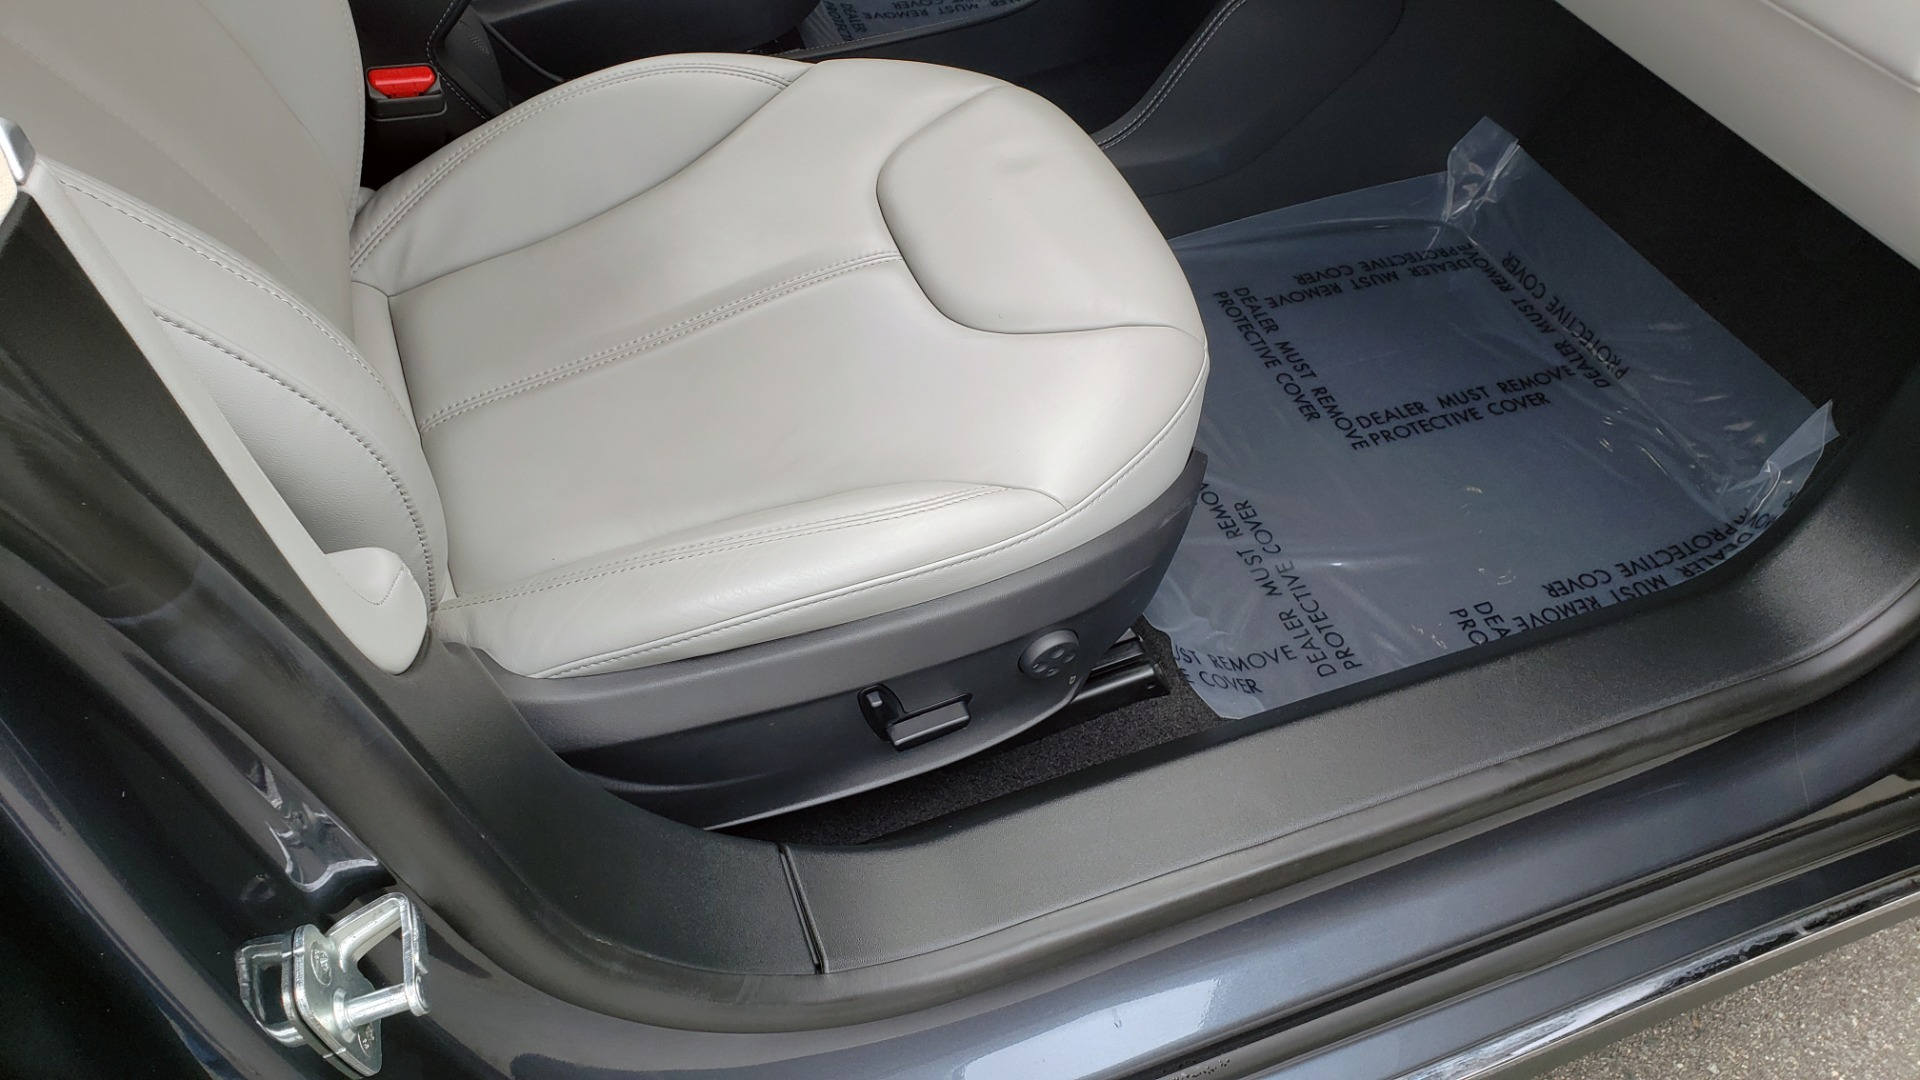 Used 2014 Tesla MODEL S 60 kWh BATTERY / TECH / NAV / SUBZERO / SUNROOF / REARVIEW for sale Sold at Formula Imports in Charlotte NC 28227 55